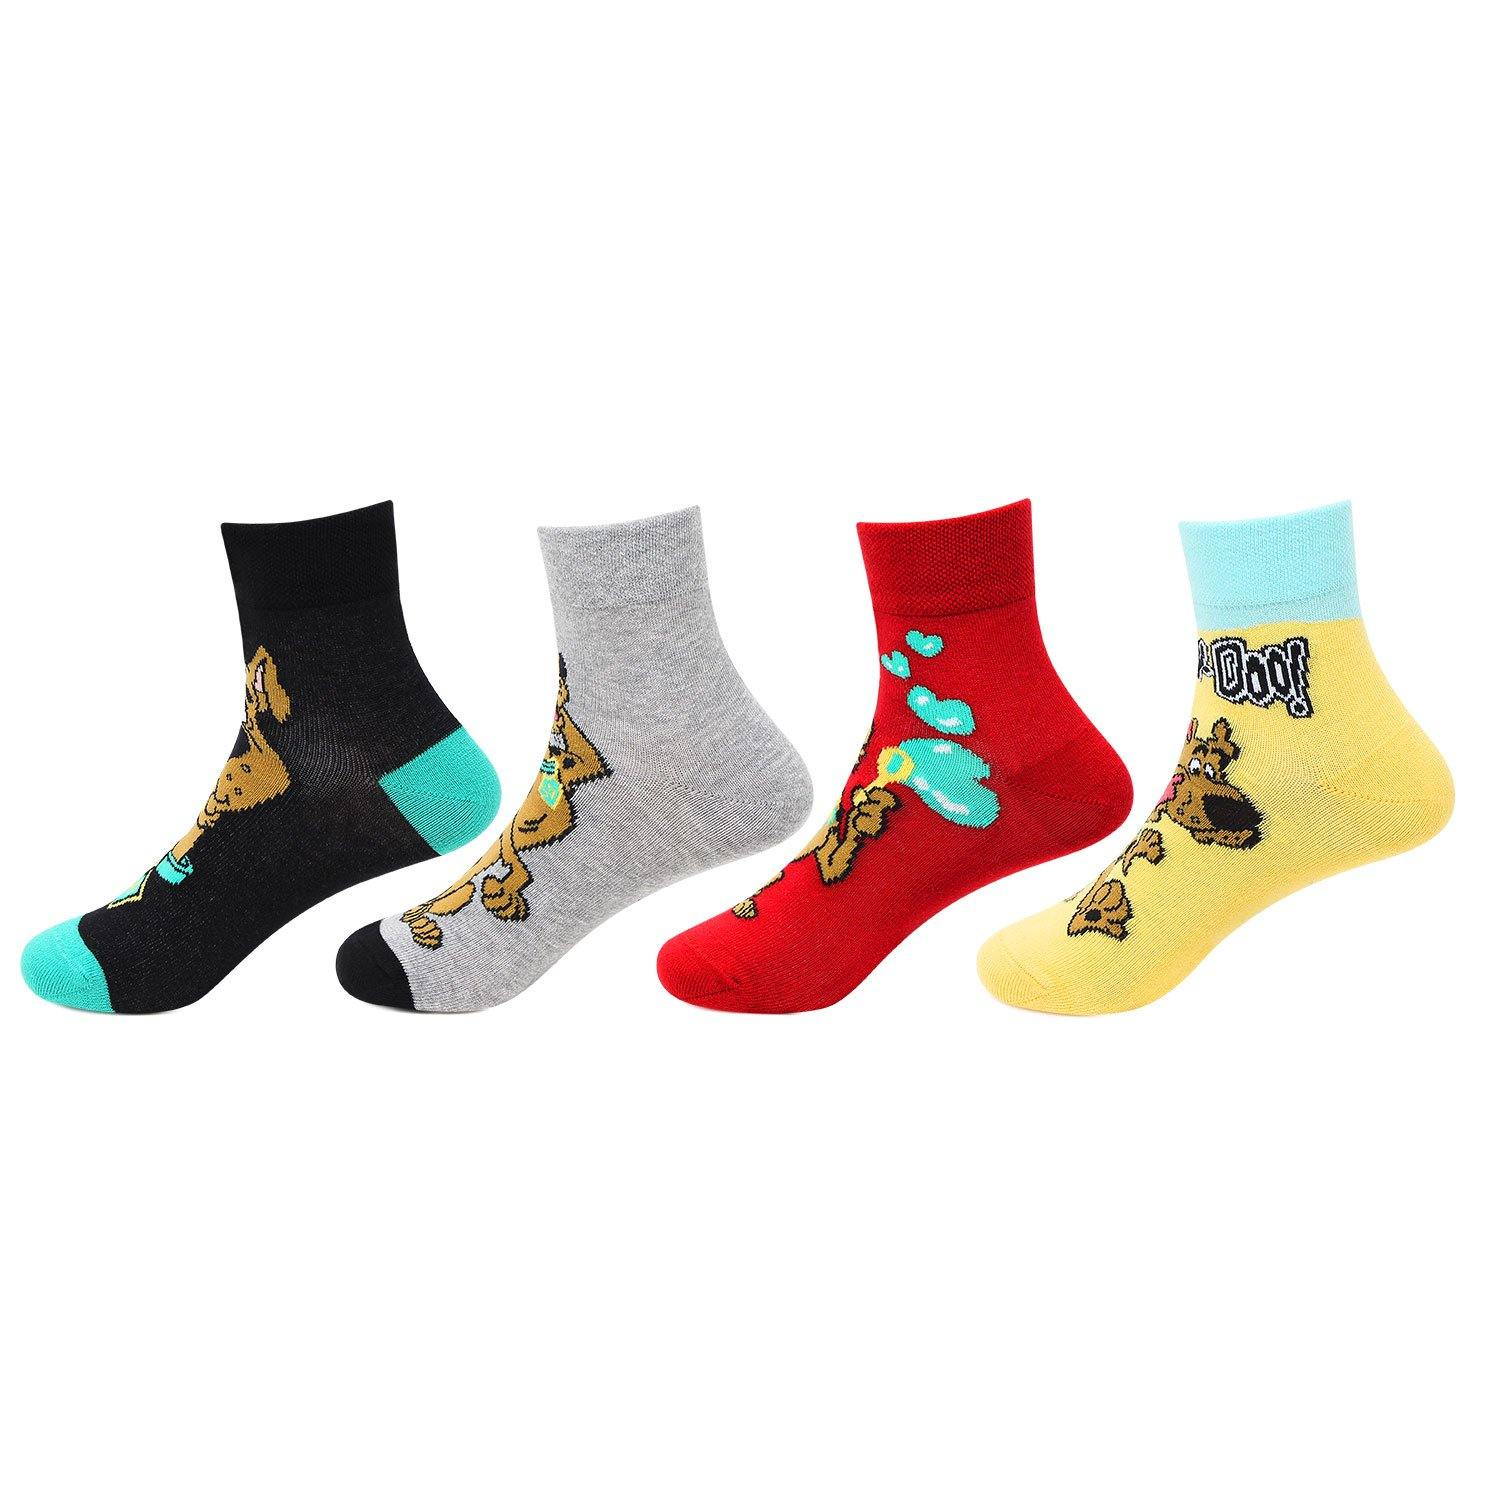 Scooby Doo Ankle Socks for Kids